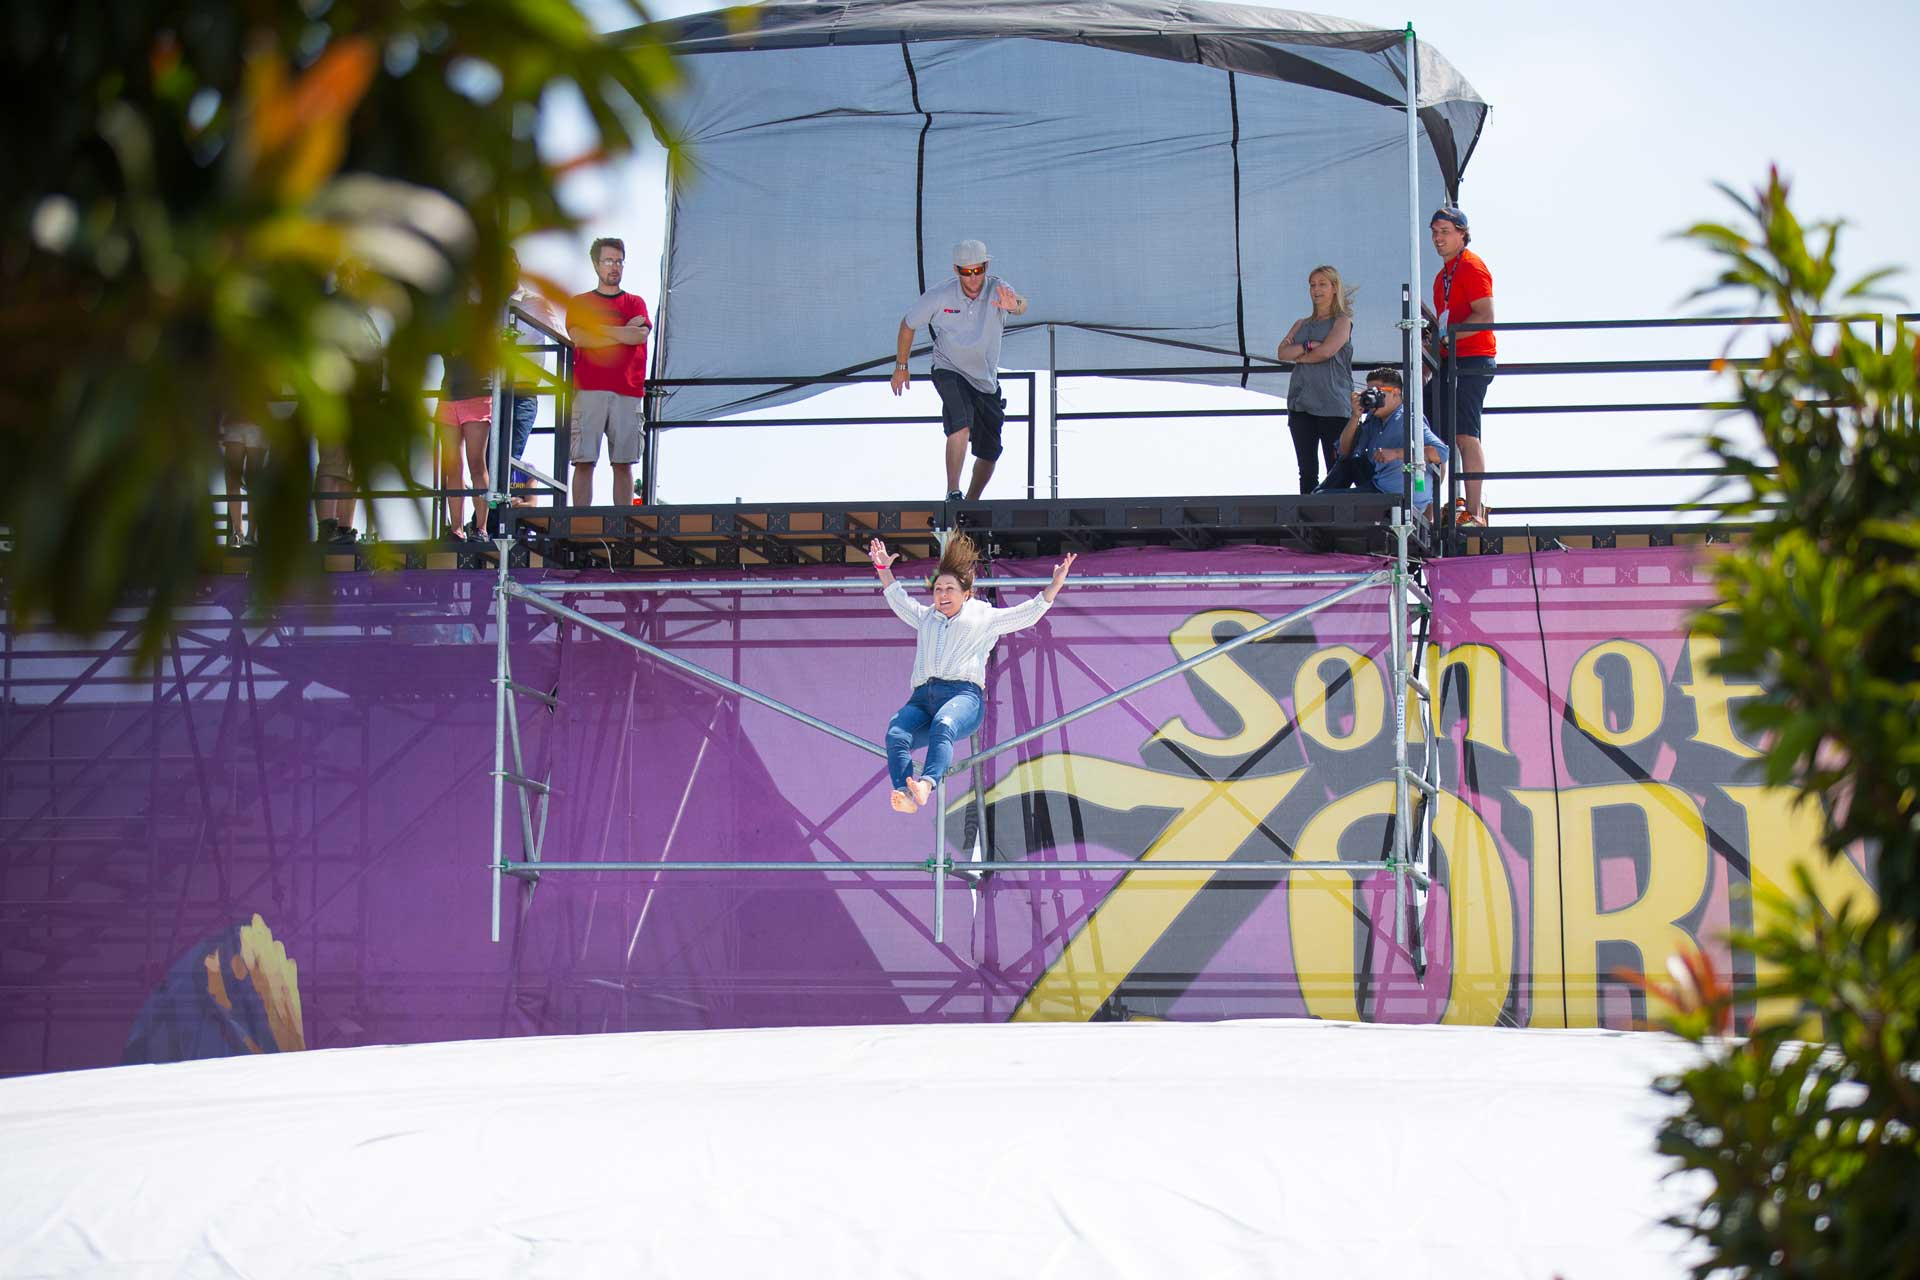 Woman jumping from platform at Son of Zorn